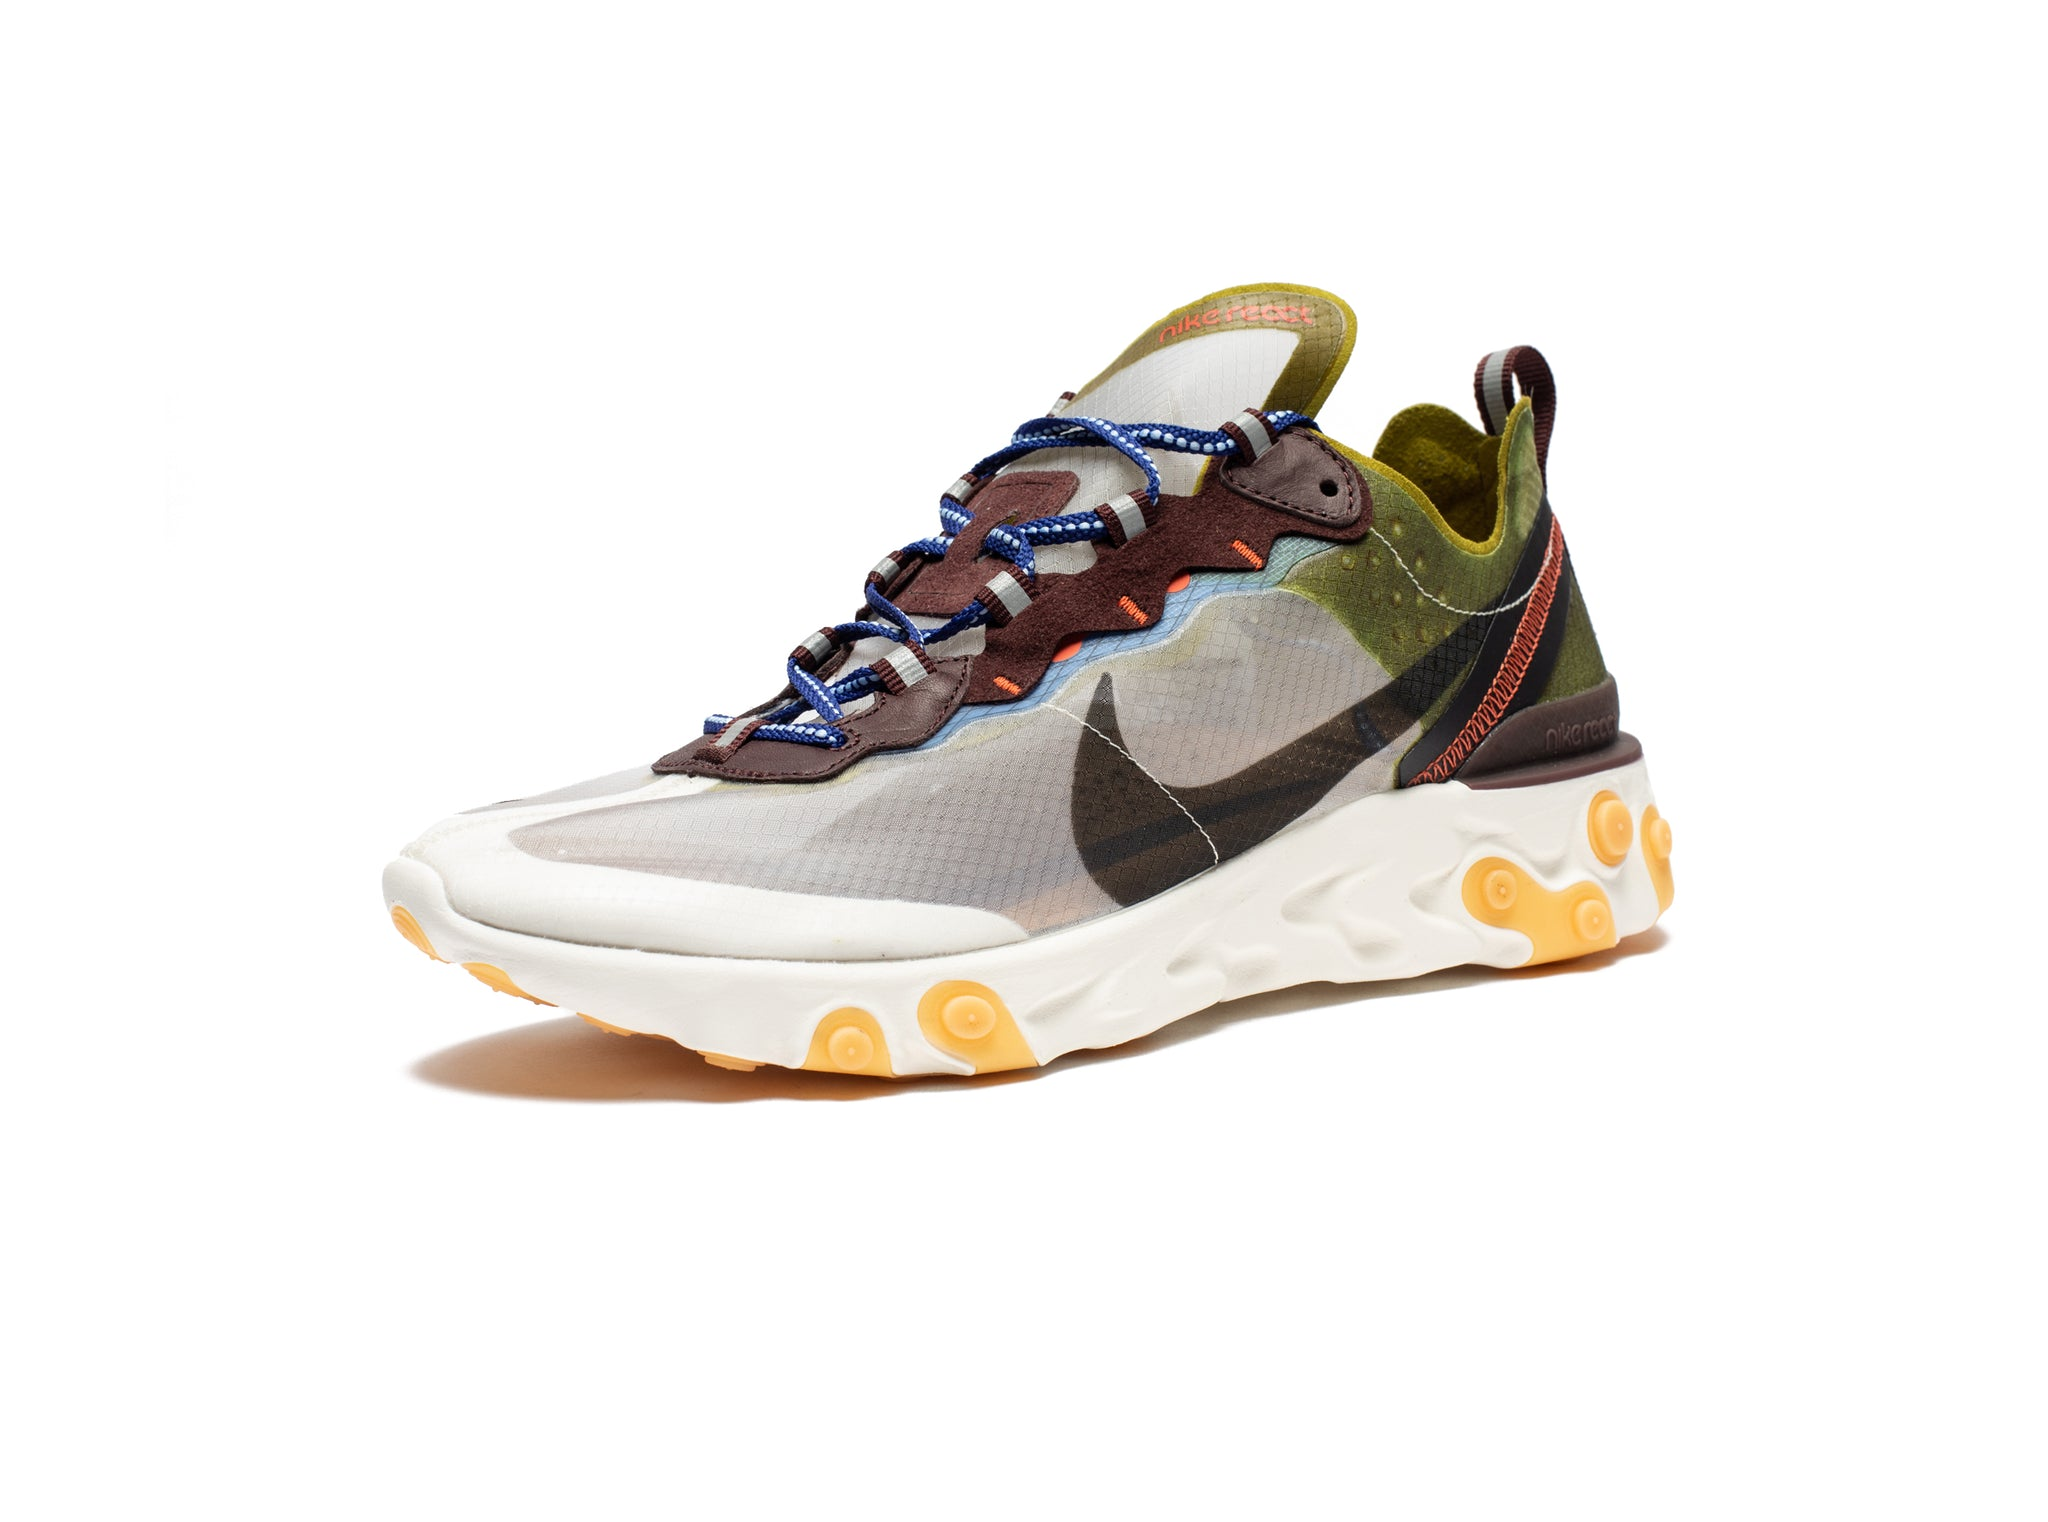 REACT ELEMENT 87 - MOSS/BLACK/ELDORADO/DEEPROYALBLUE